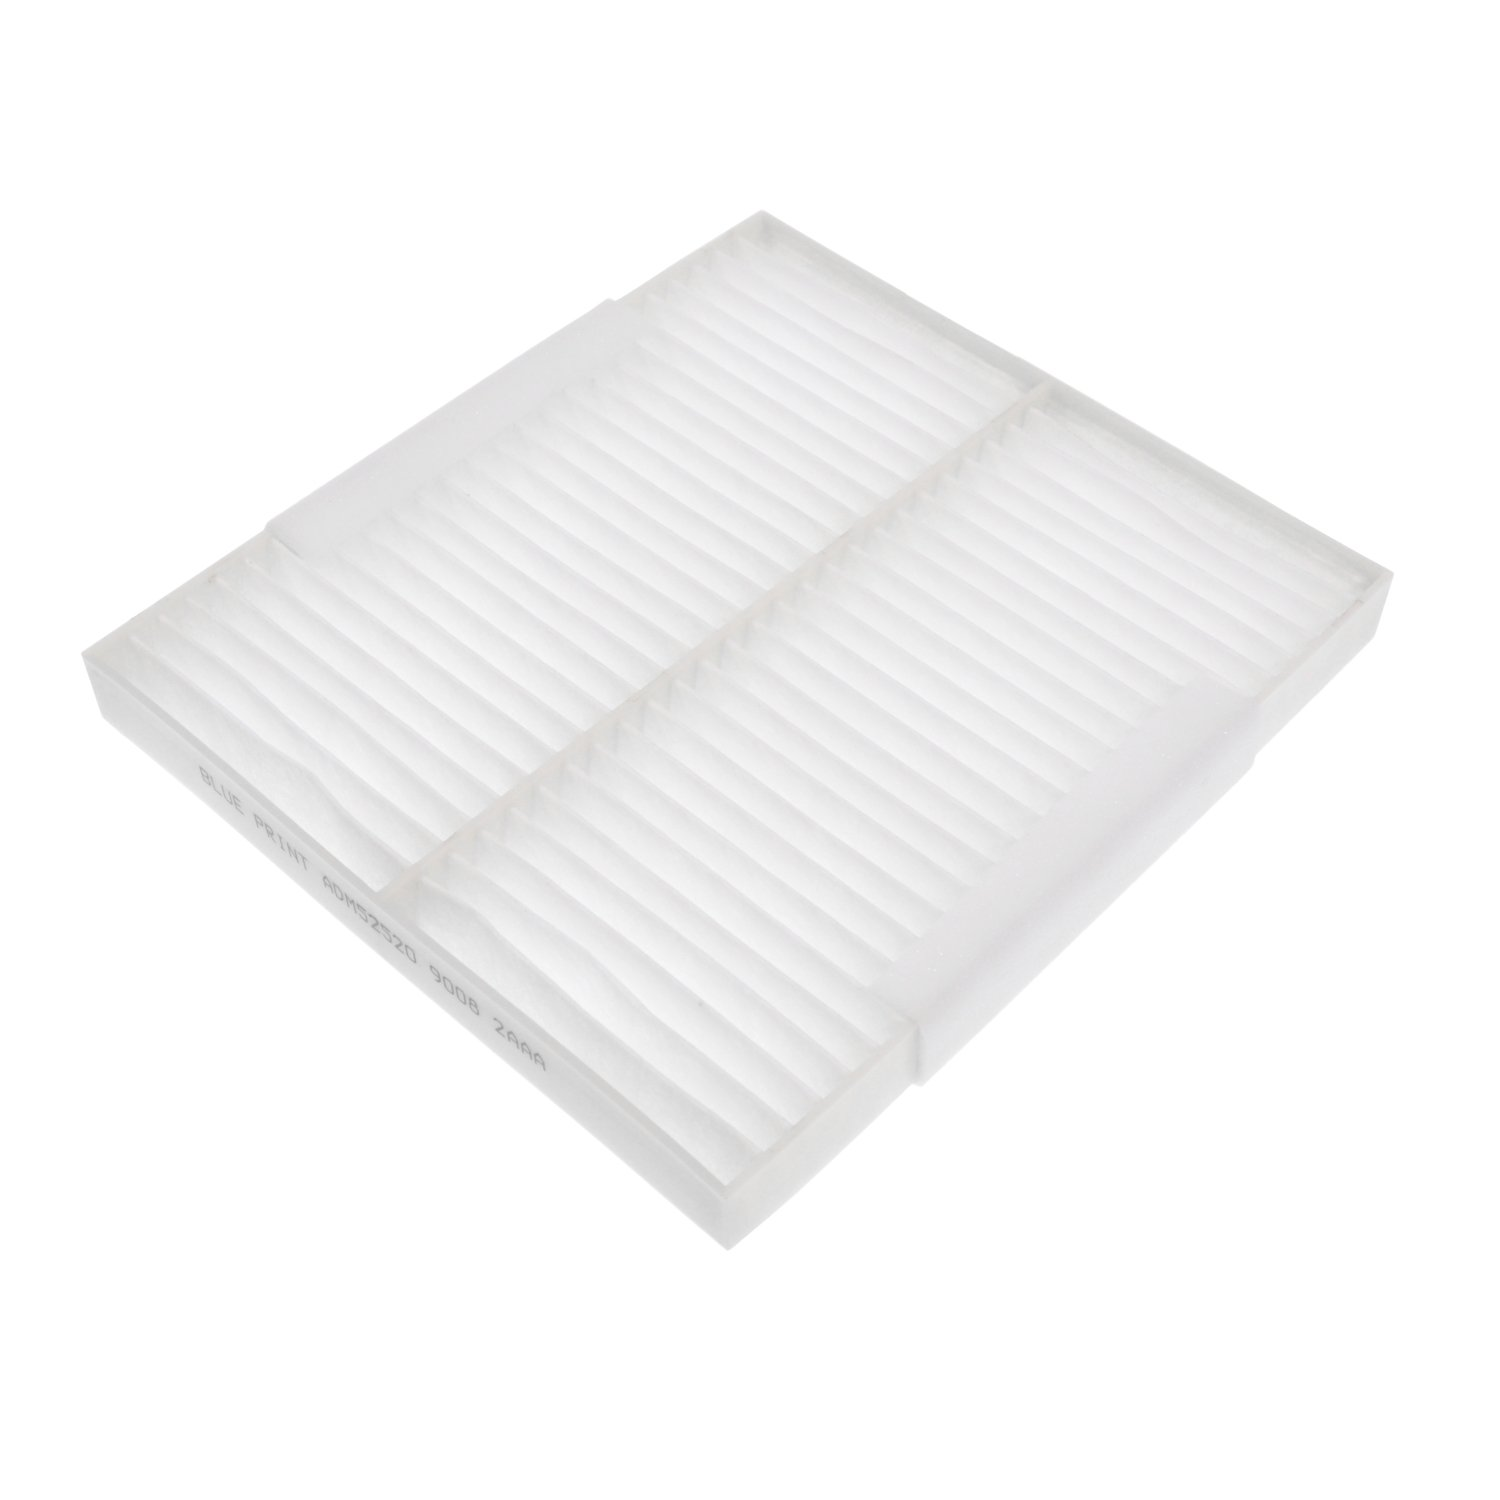 Blue Print ADM52520 cabin filter Pack of 1